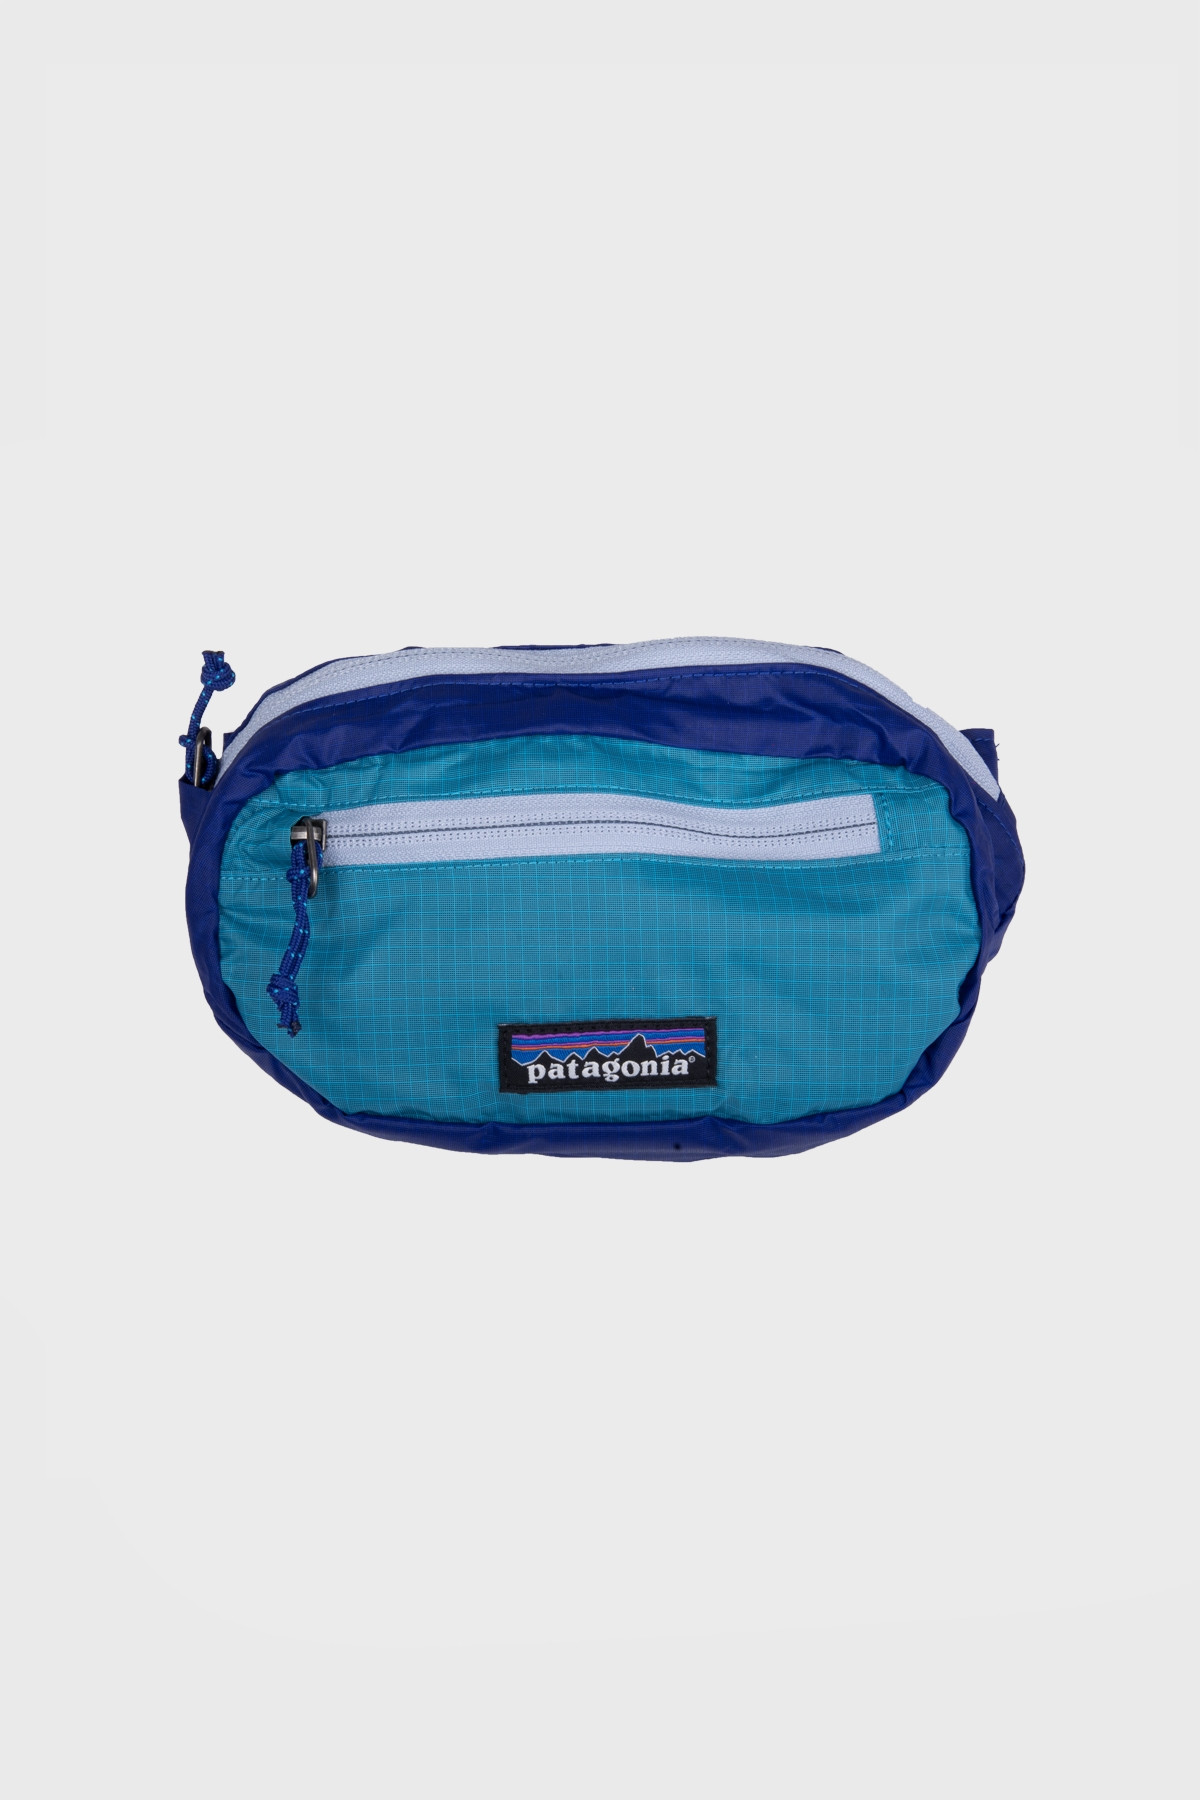 patagonia - Ultralight Black Hole® Mini Hip Pack 1L - Cobalt Blue